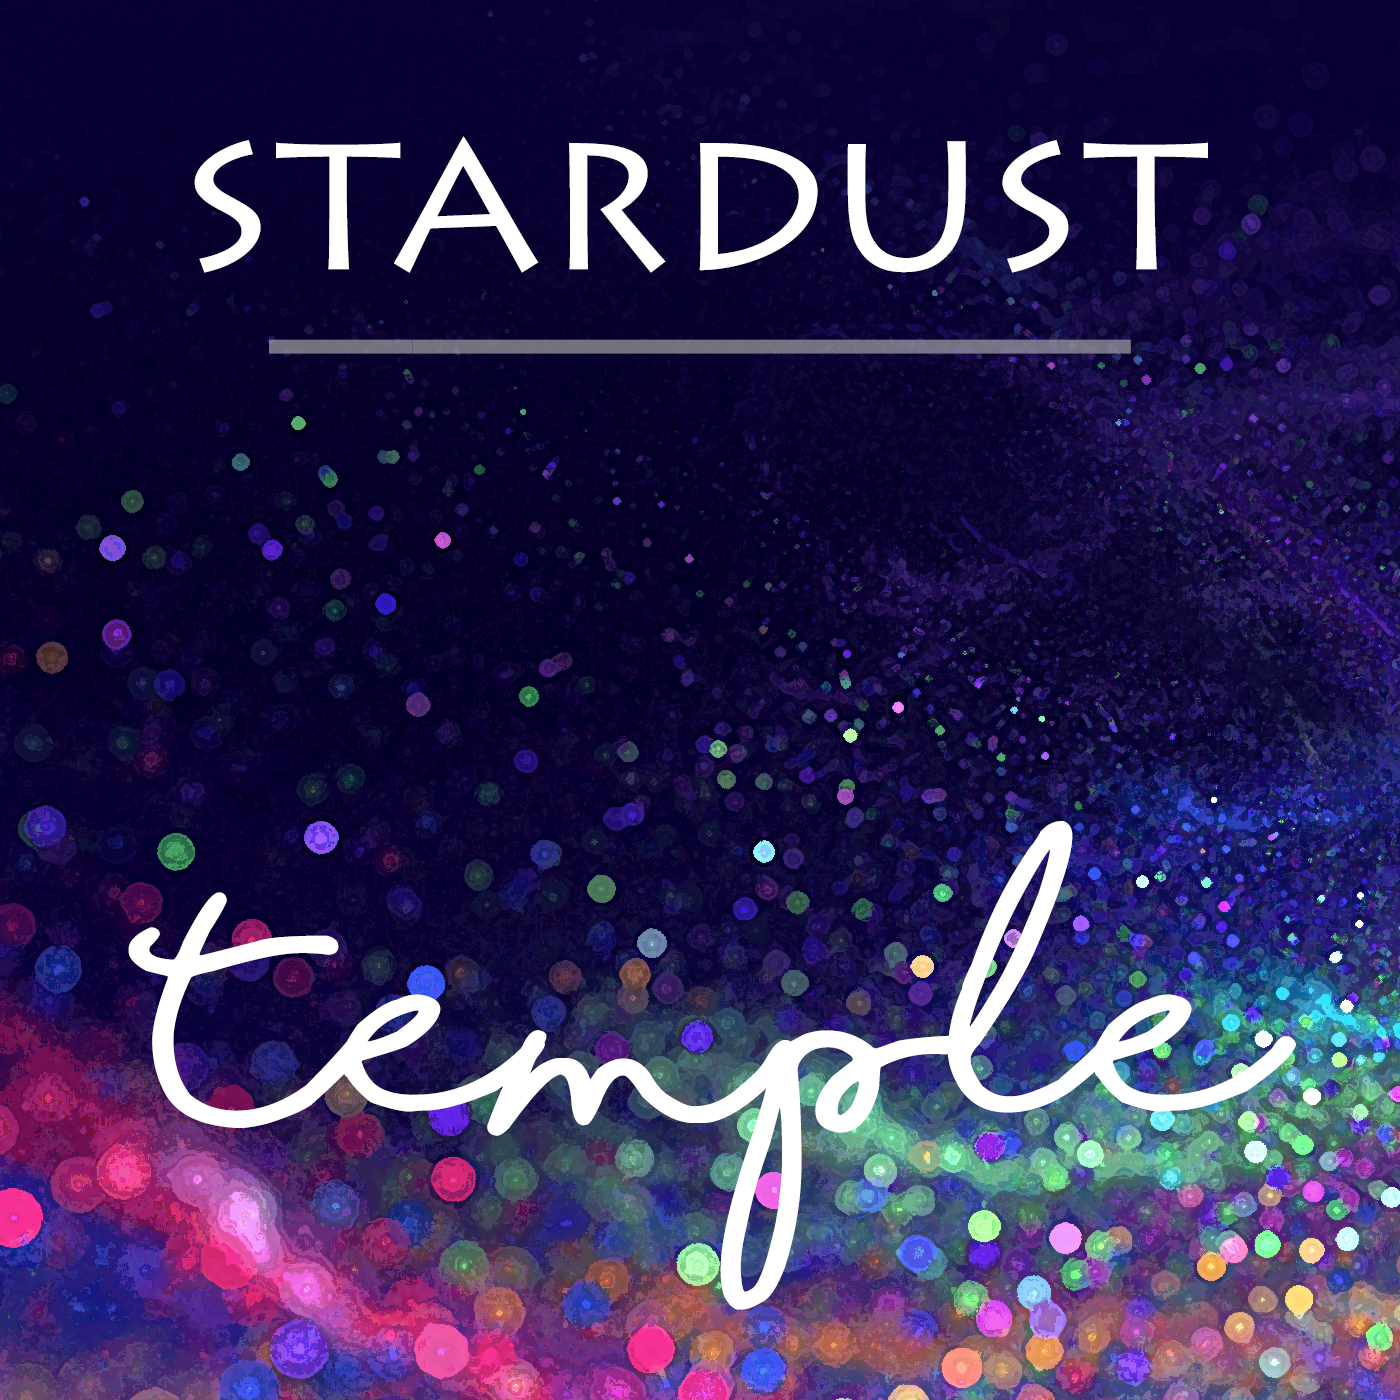 Stardust – Temple – New Single on Spotify, Tidal, Apple Music